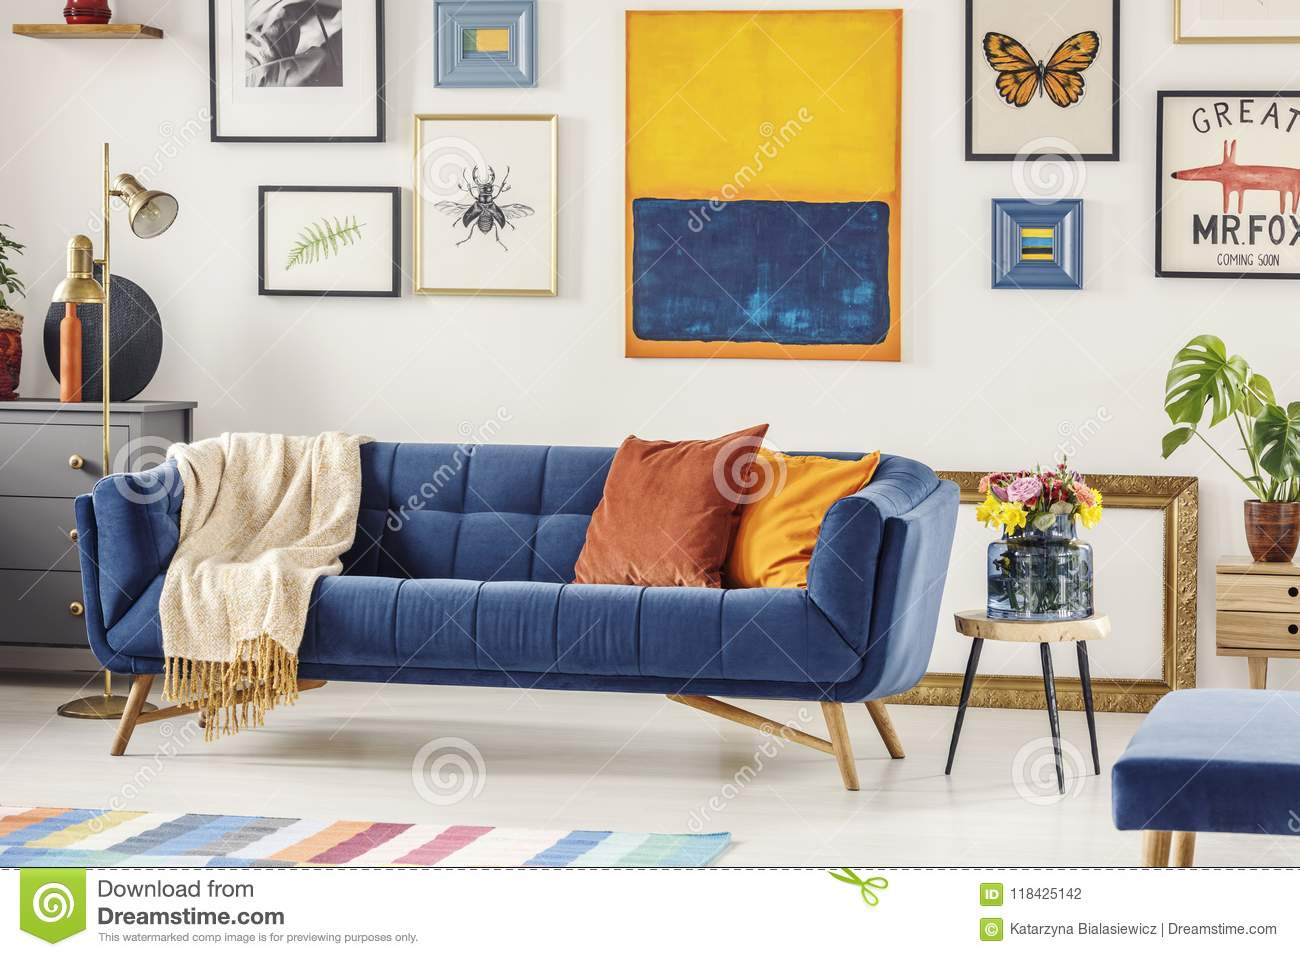 Real Photo Of A Navy Blue Couch With A Blanket And Orange ...